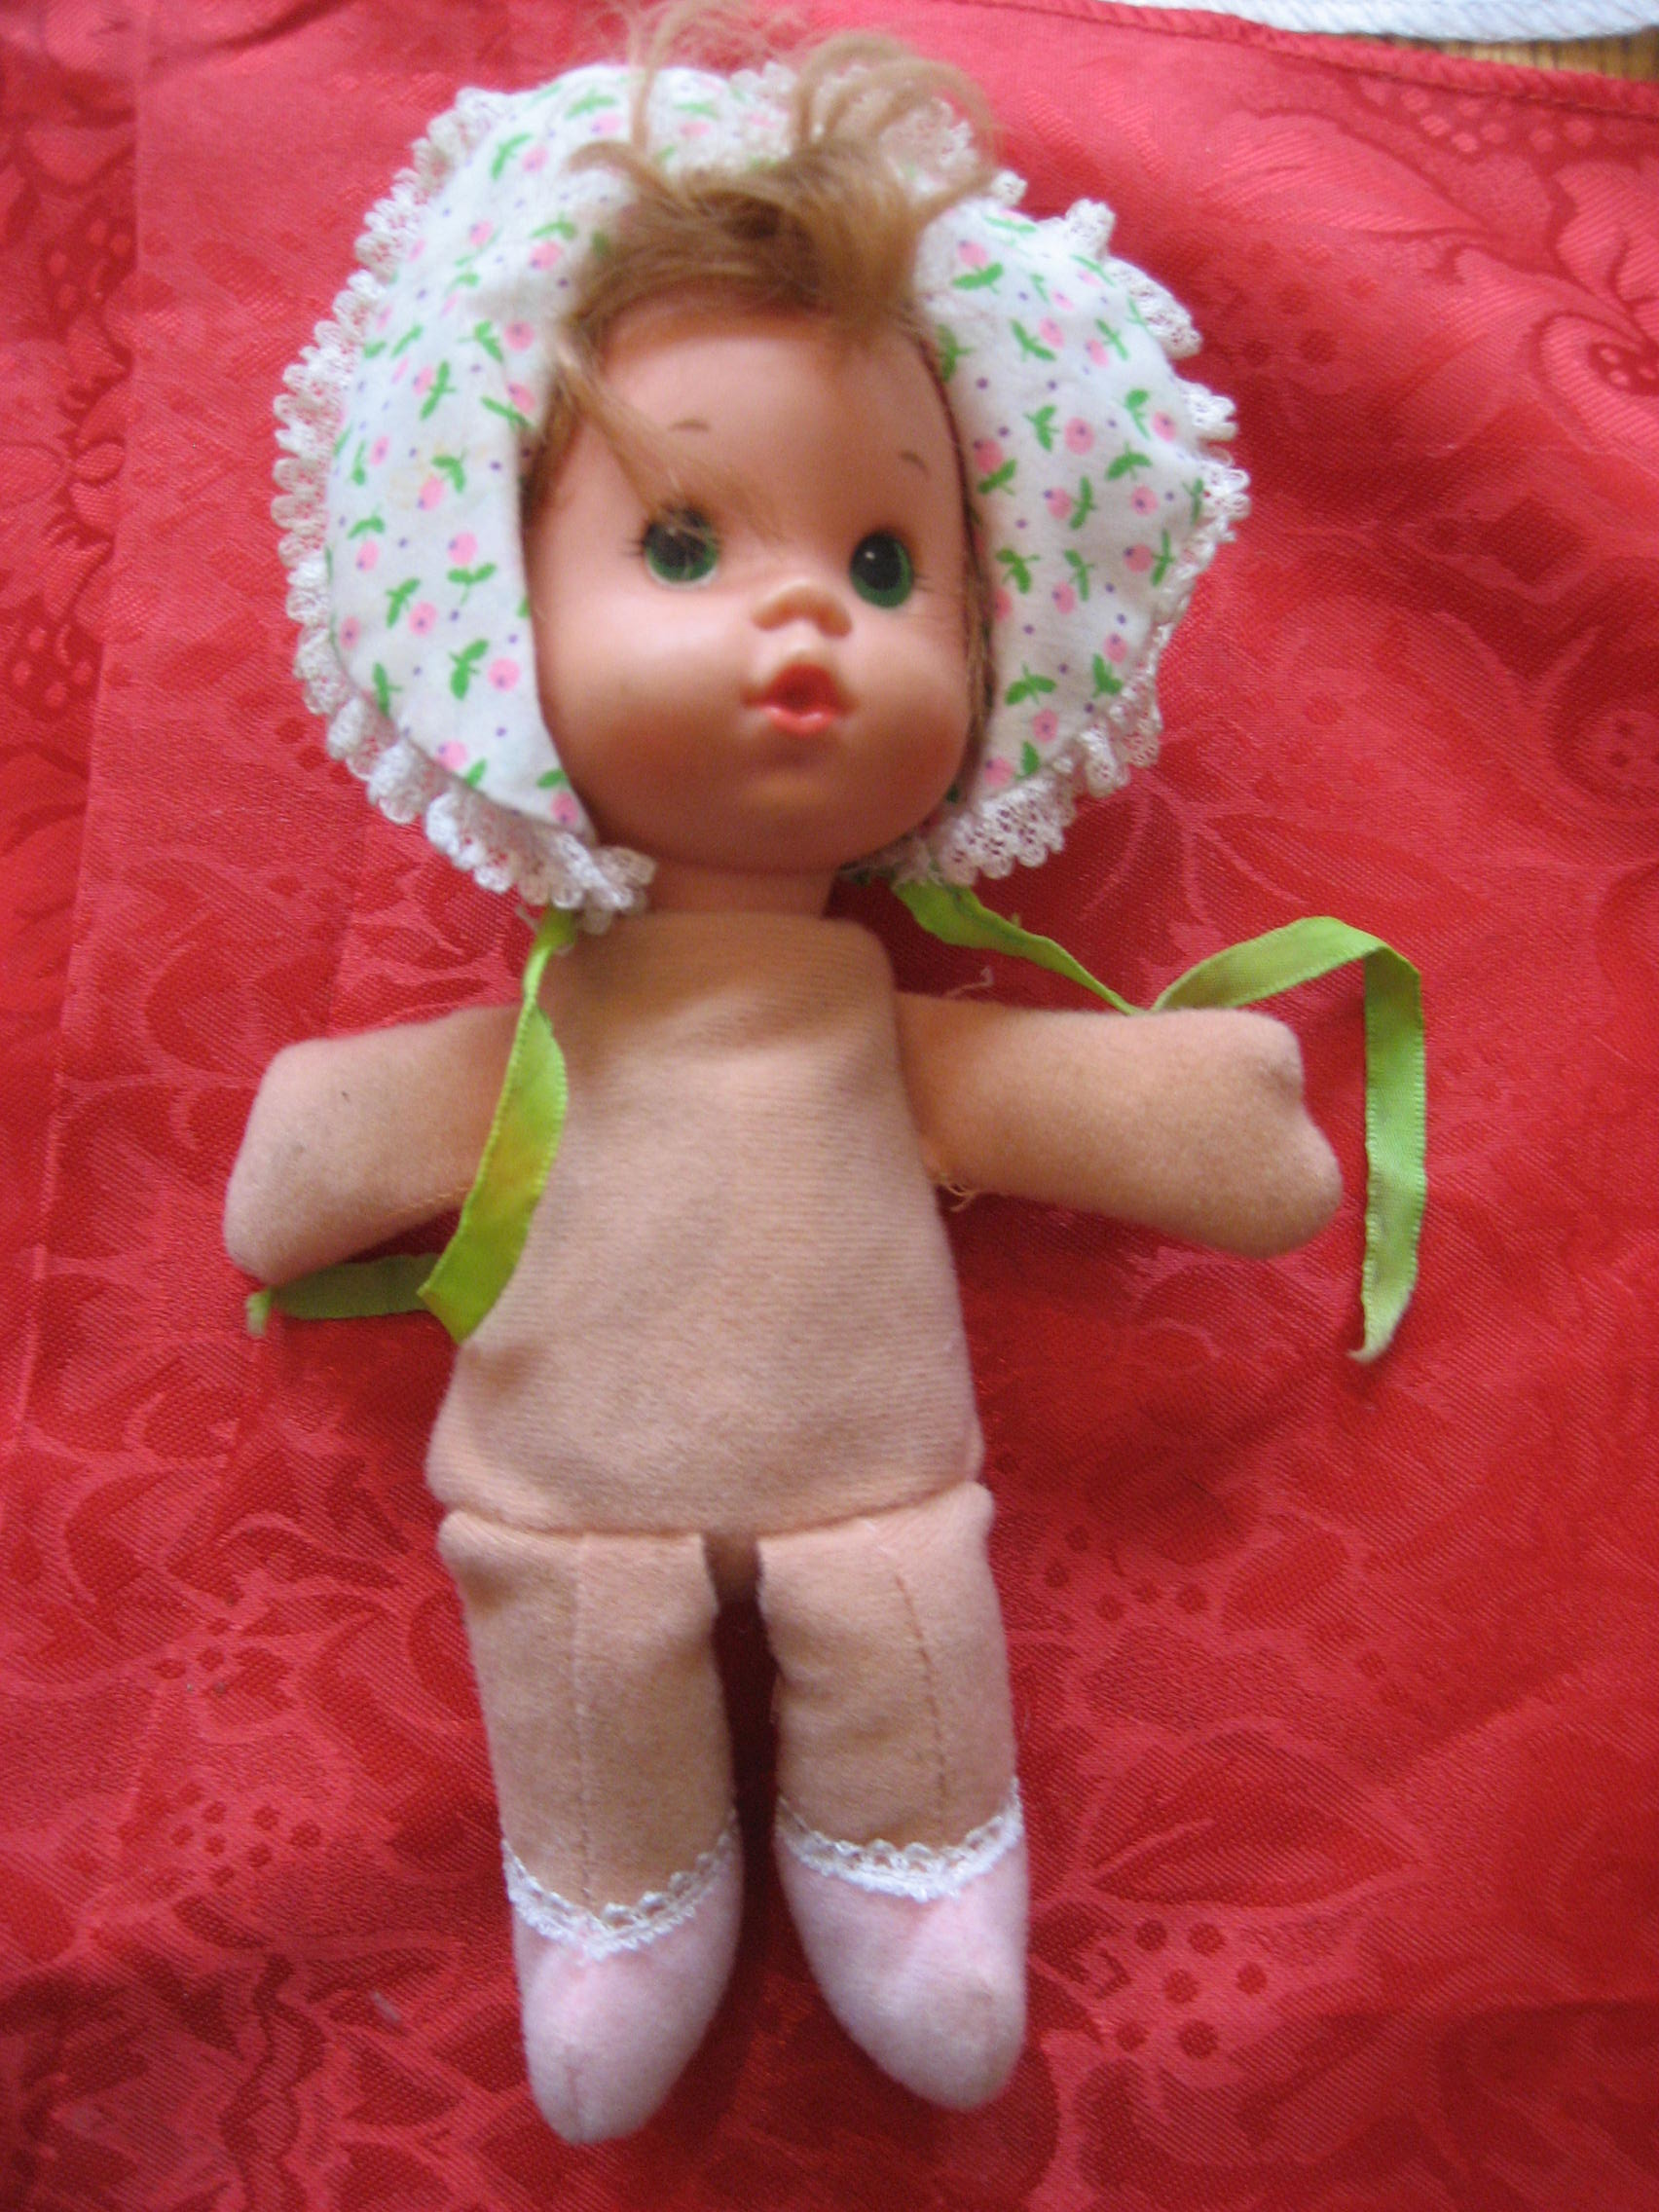 TAGGED MATTEL BABY DOLL -- DOES SHE HAVE A NAME?